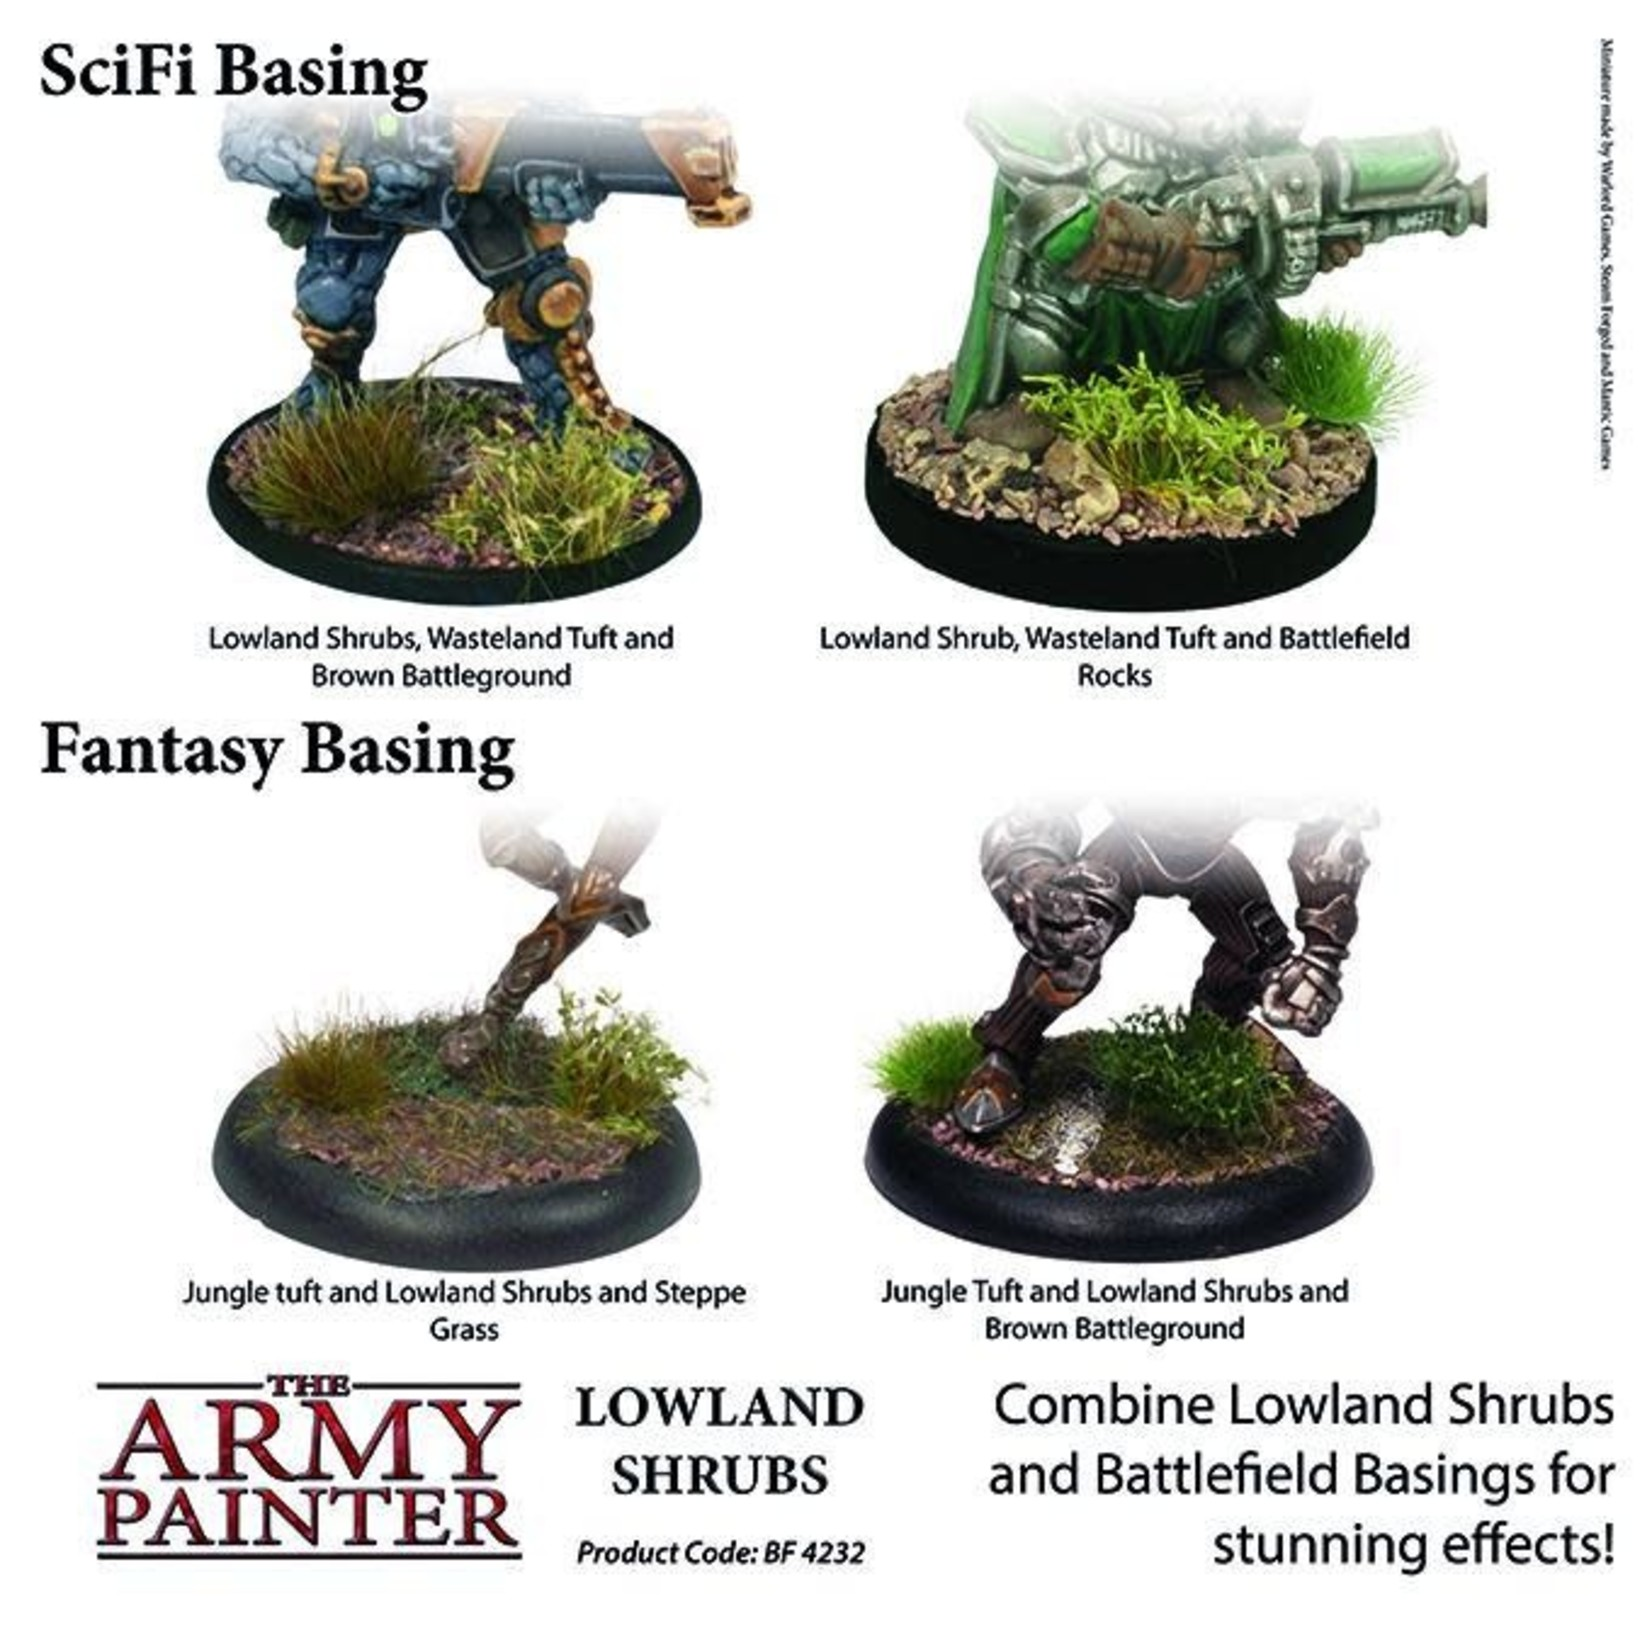 THE ARMY PAINTER LOWLAND SHRUBS